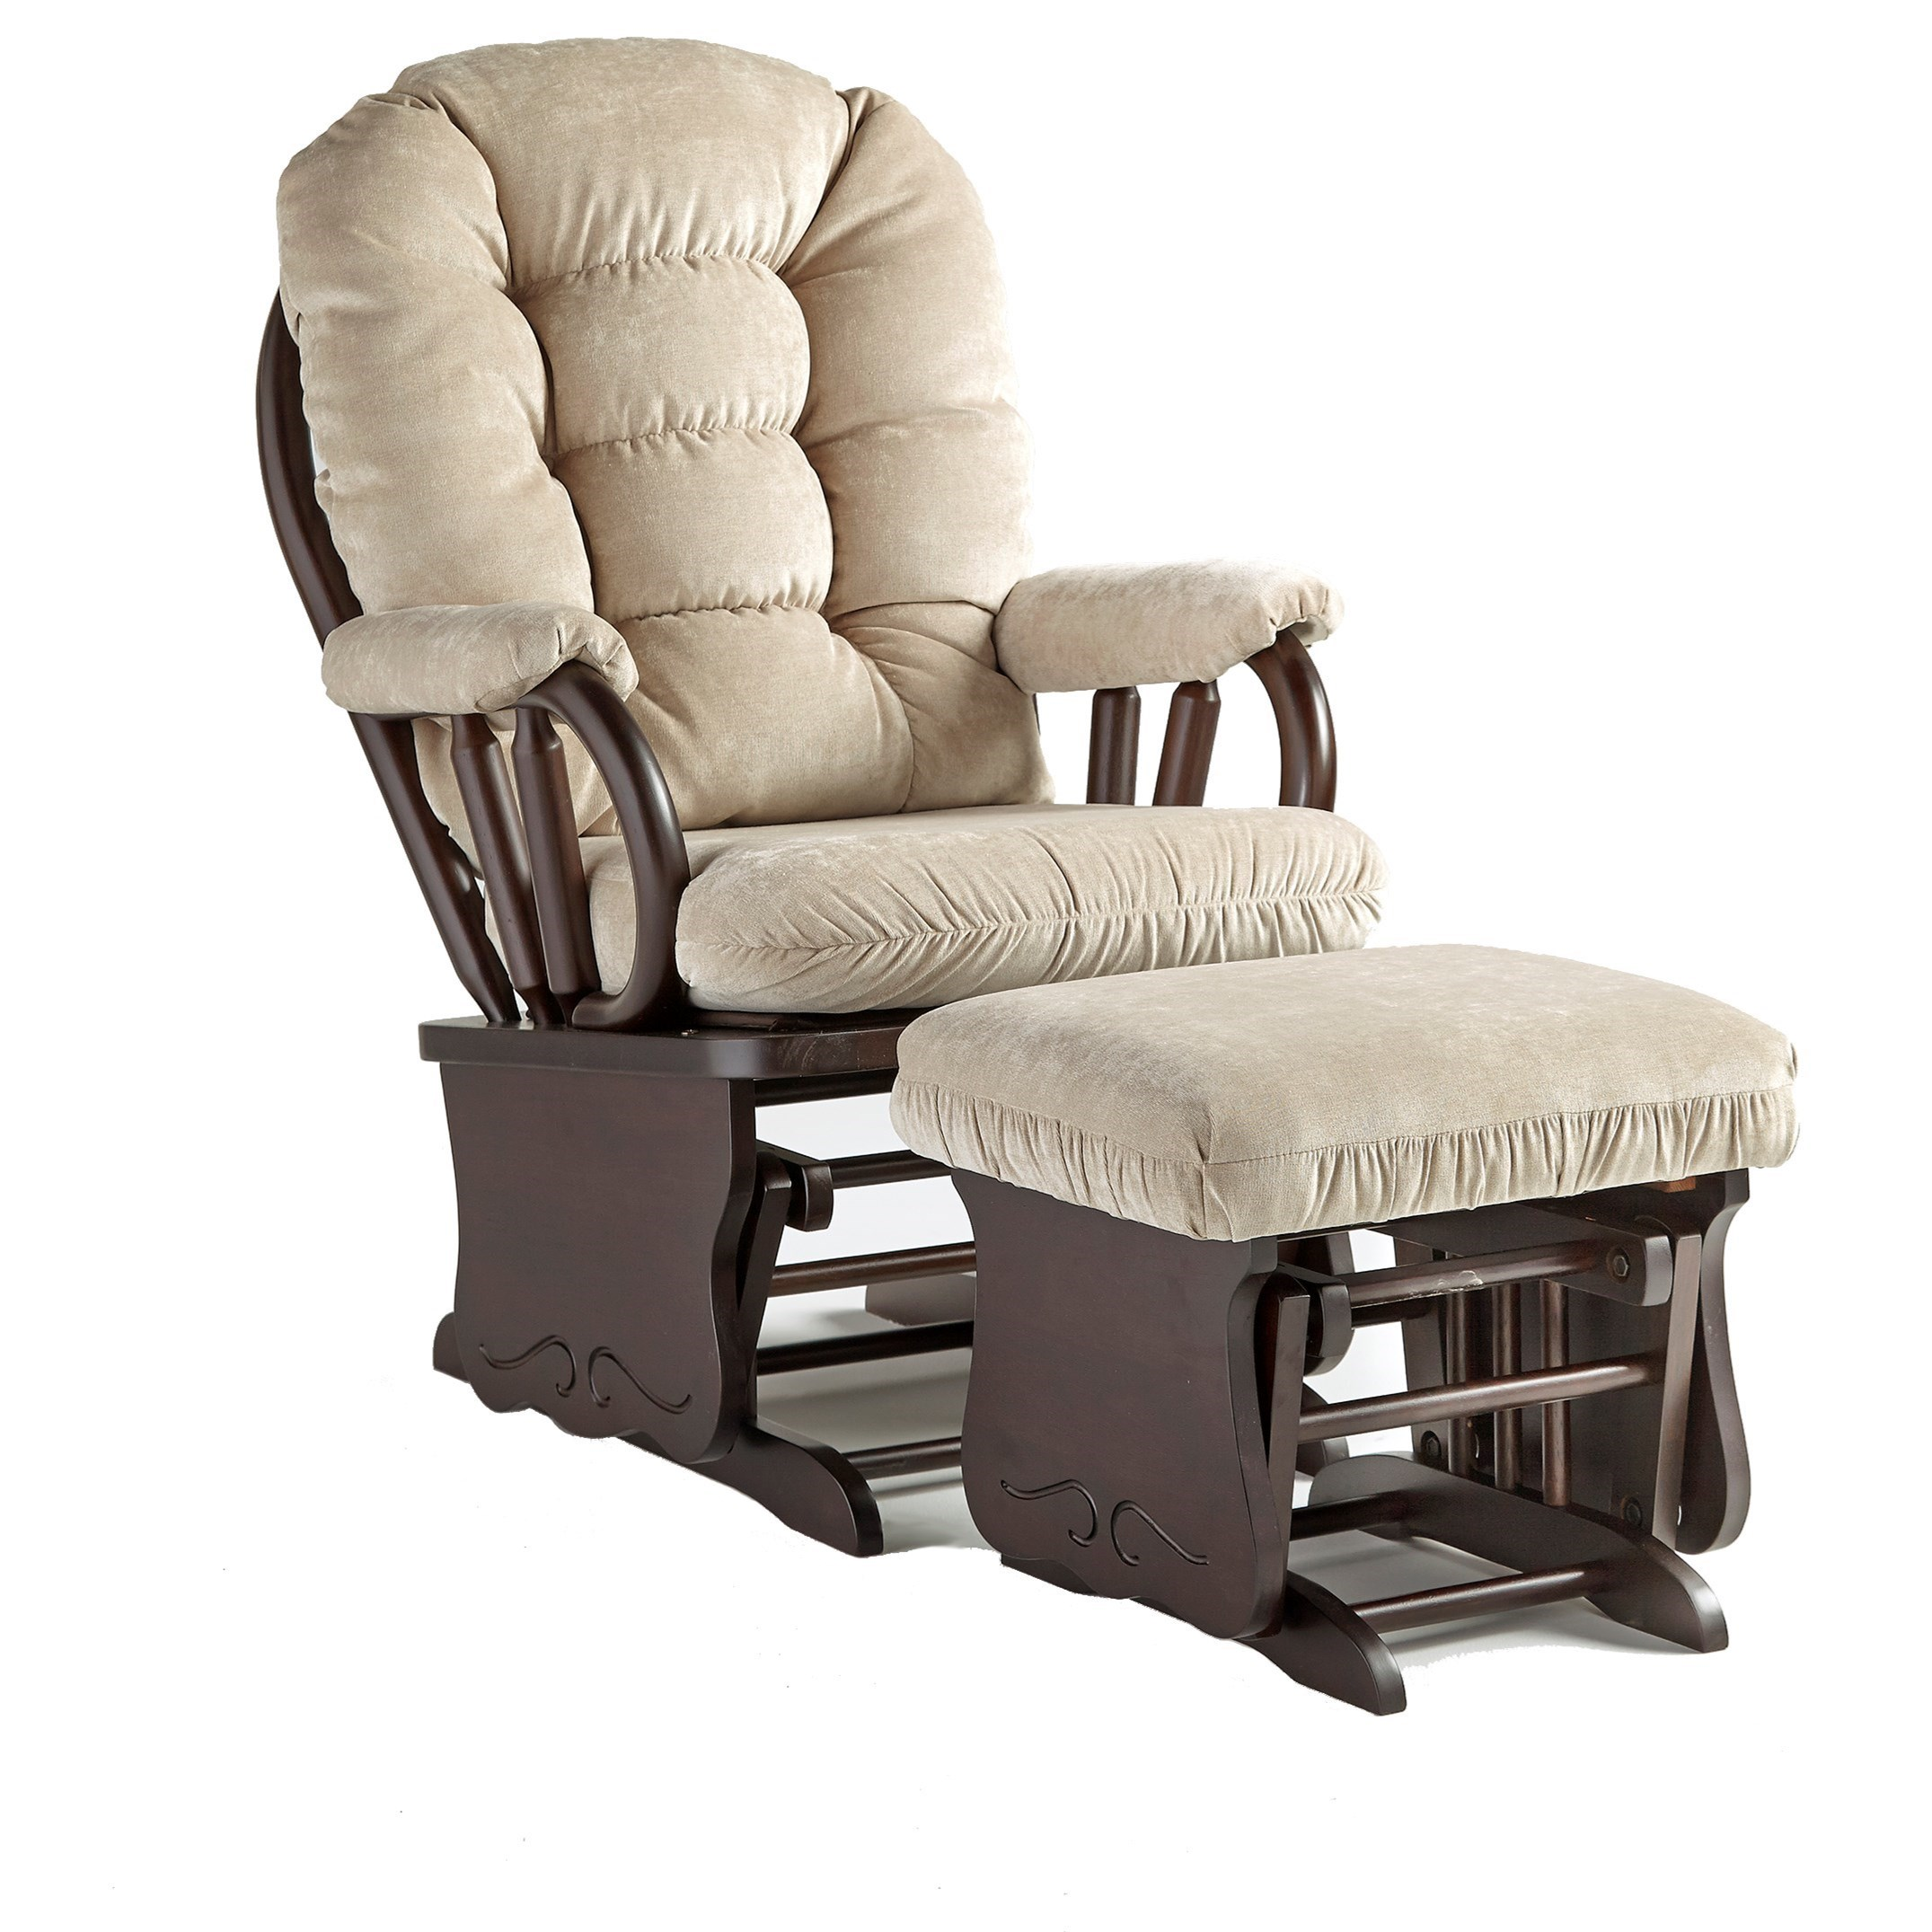 Best Home Furnishings Bedazzle Gliding Rocker And Ottoman Steger S Furniture Chair Ottoman Sets